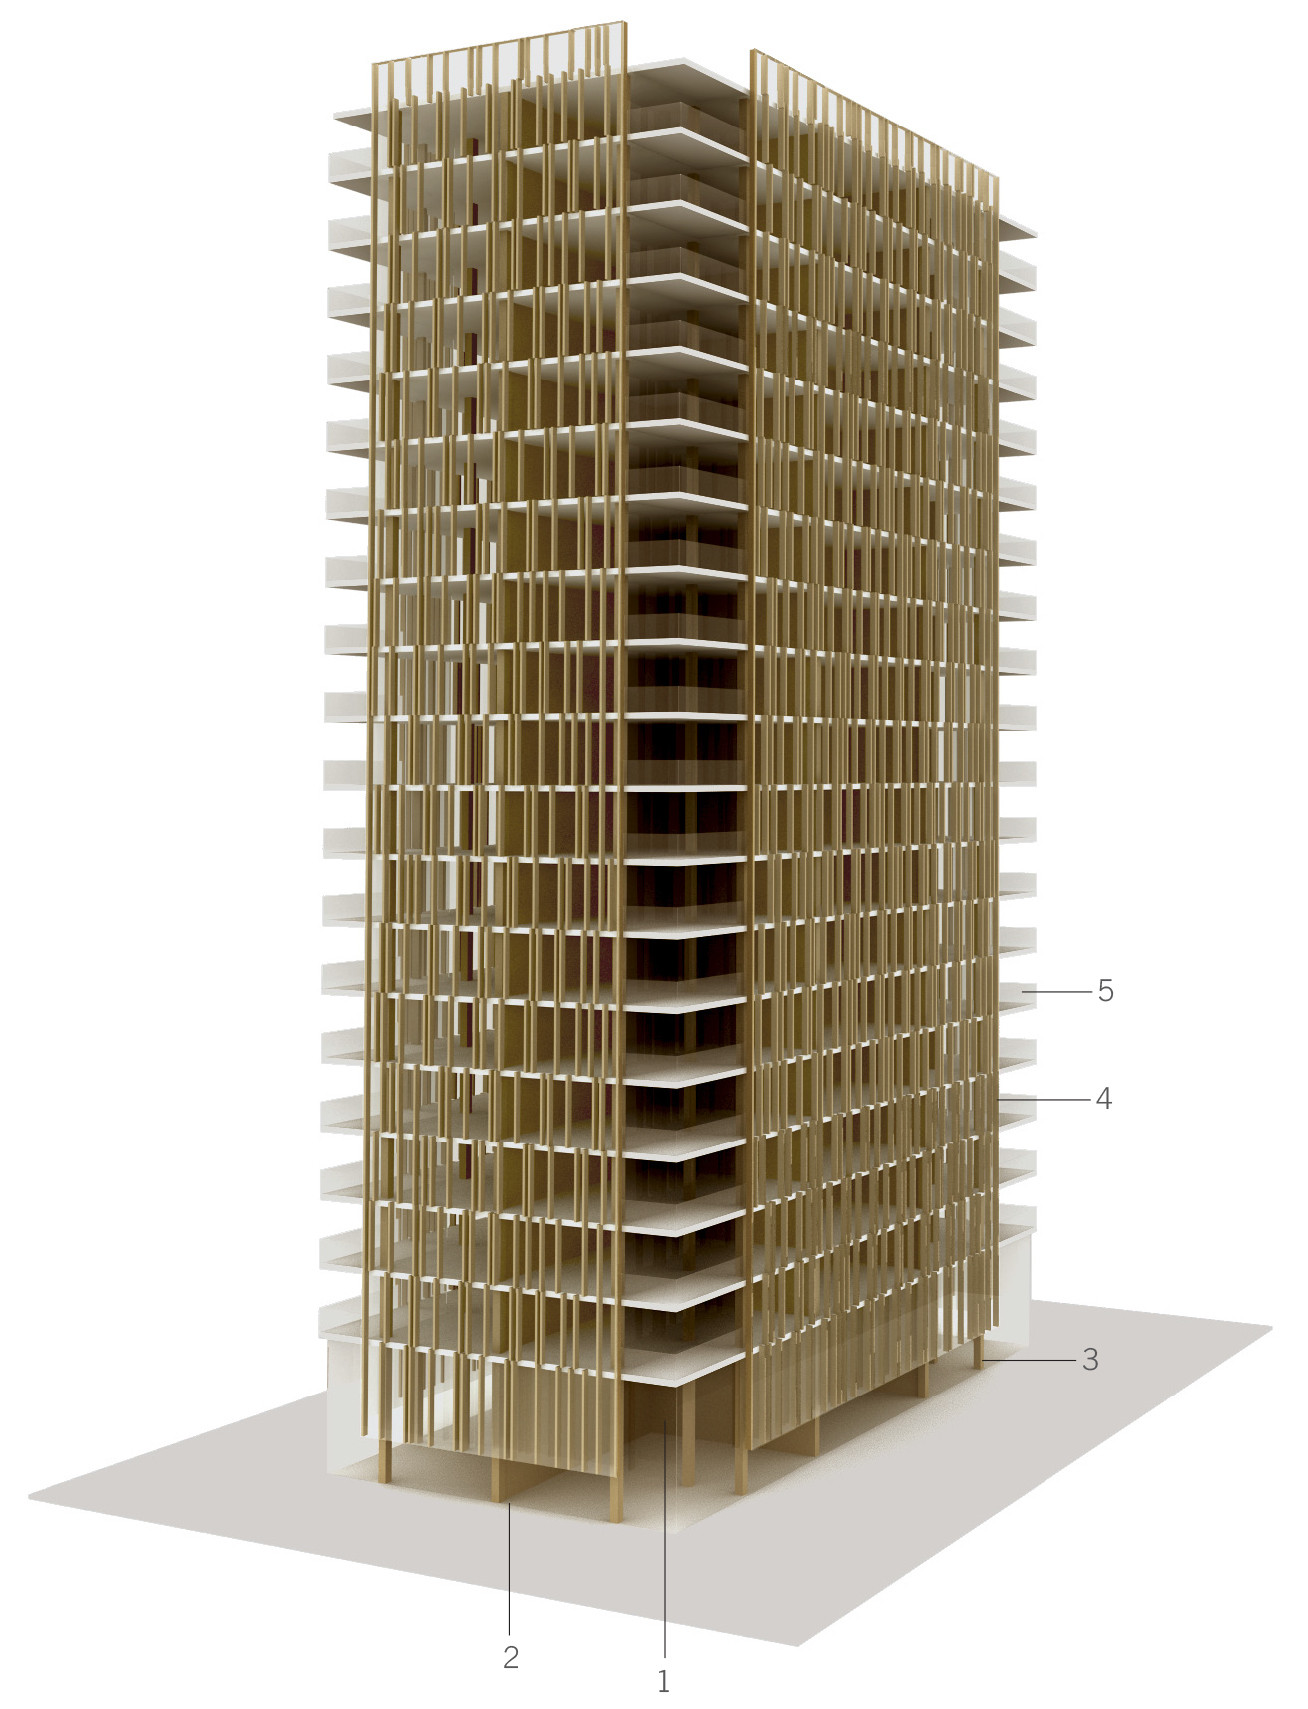 Gallery Of The Case For Tall Wood Buildings 2